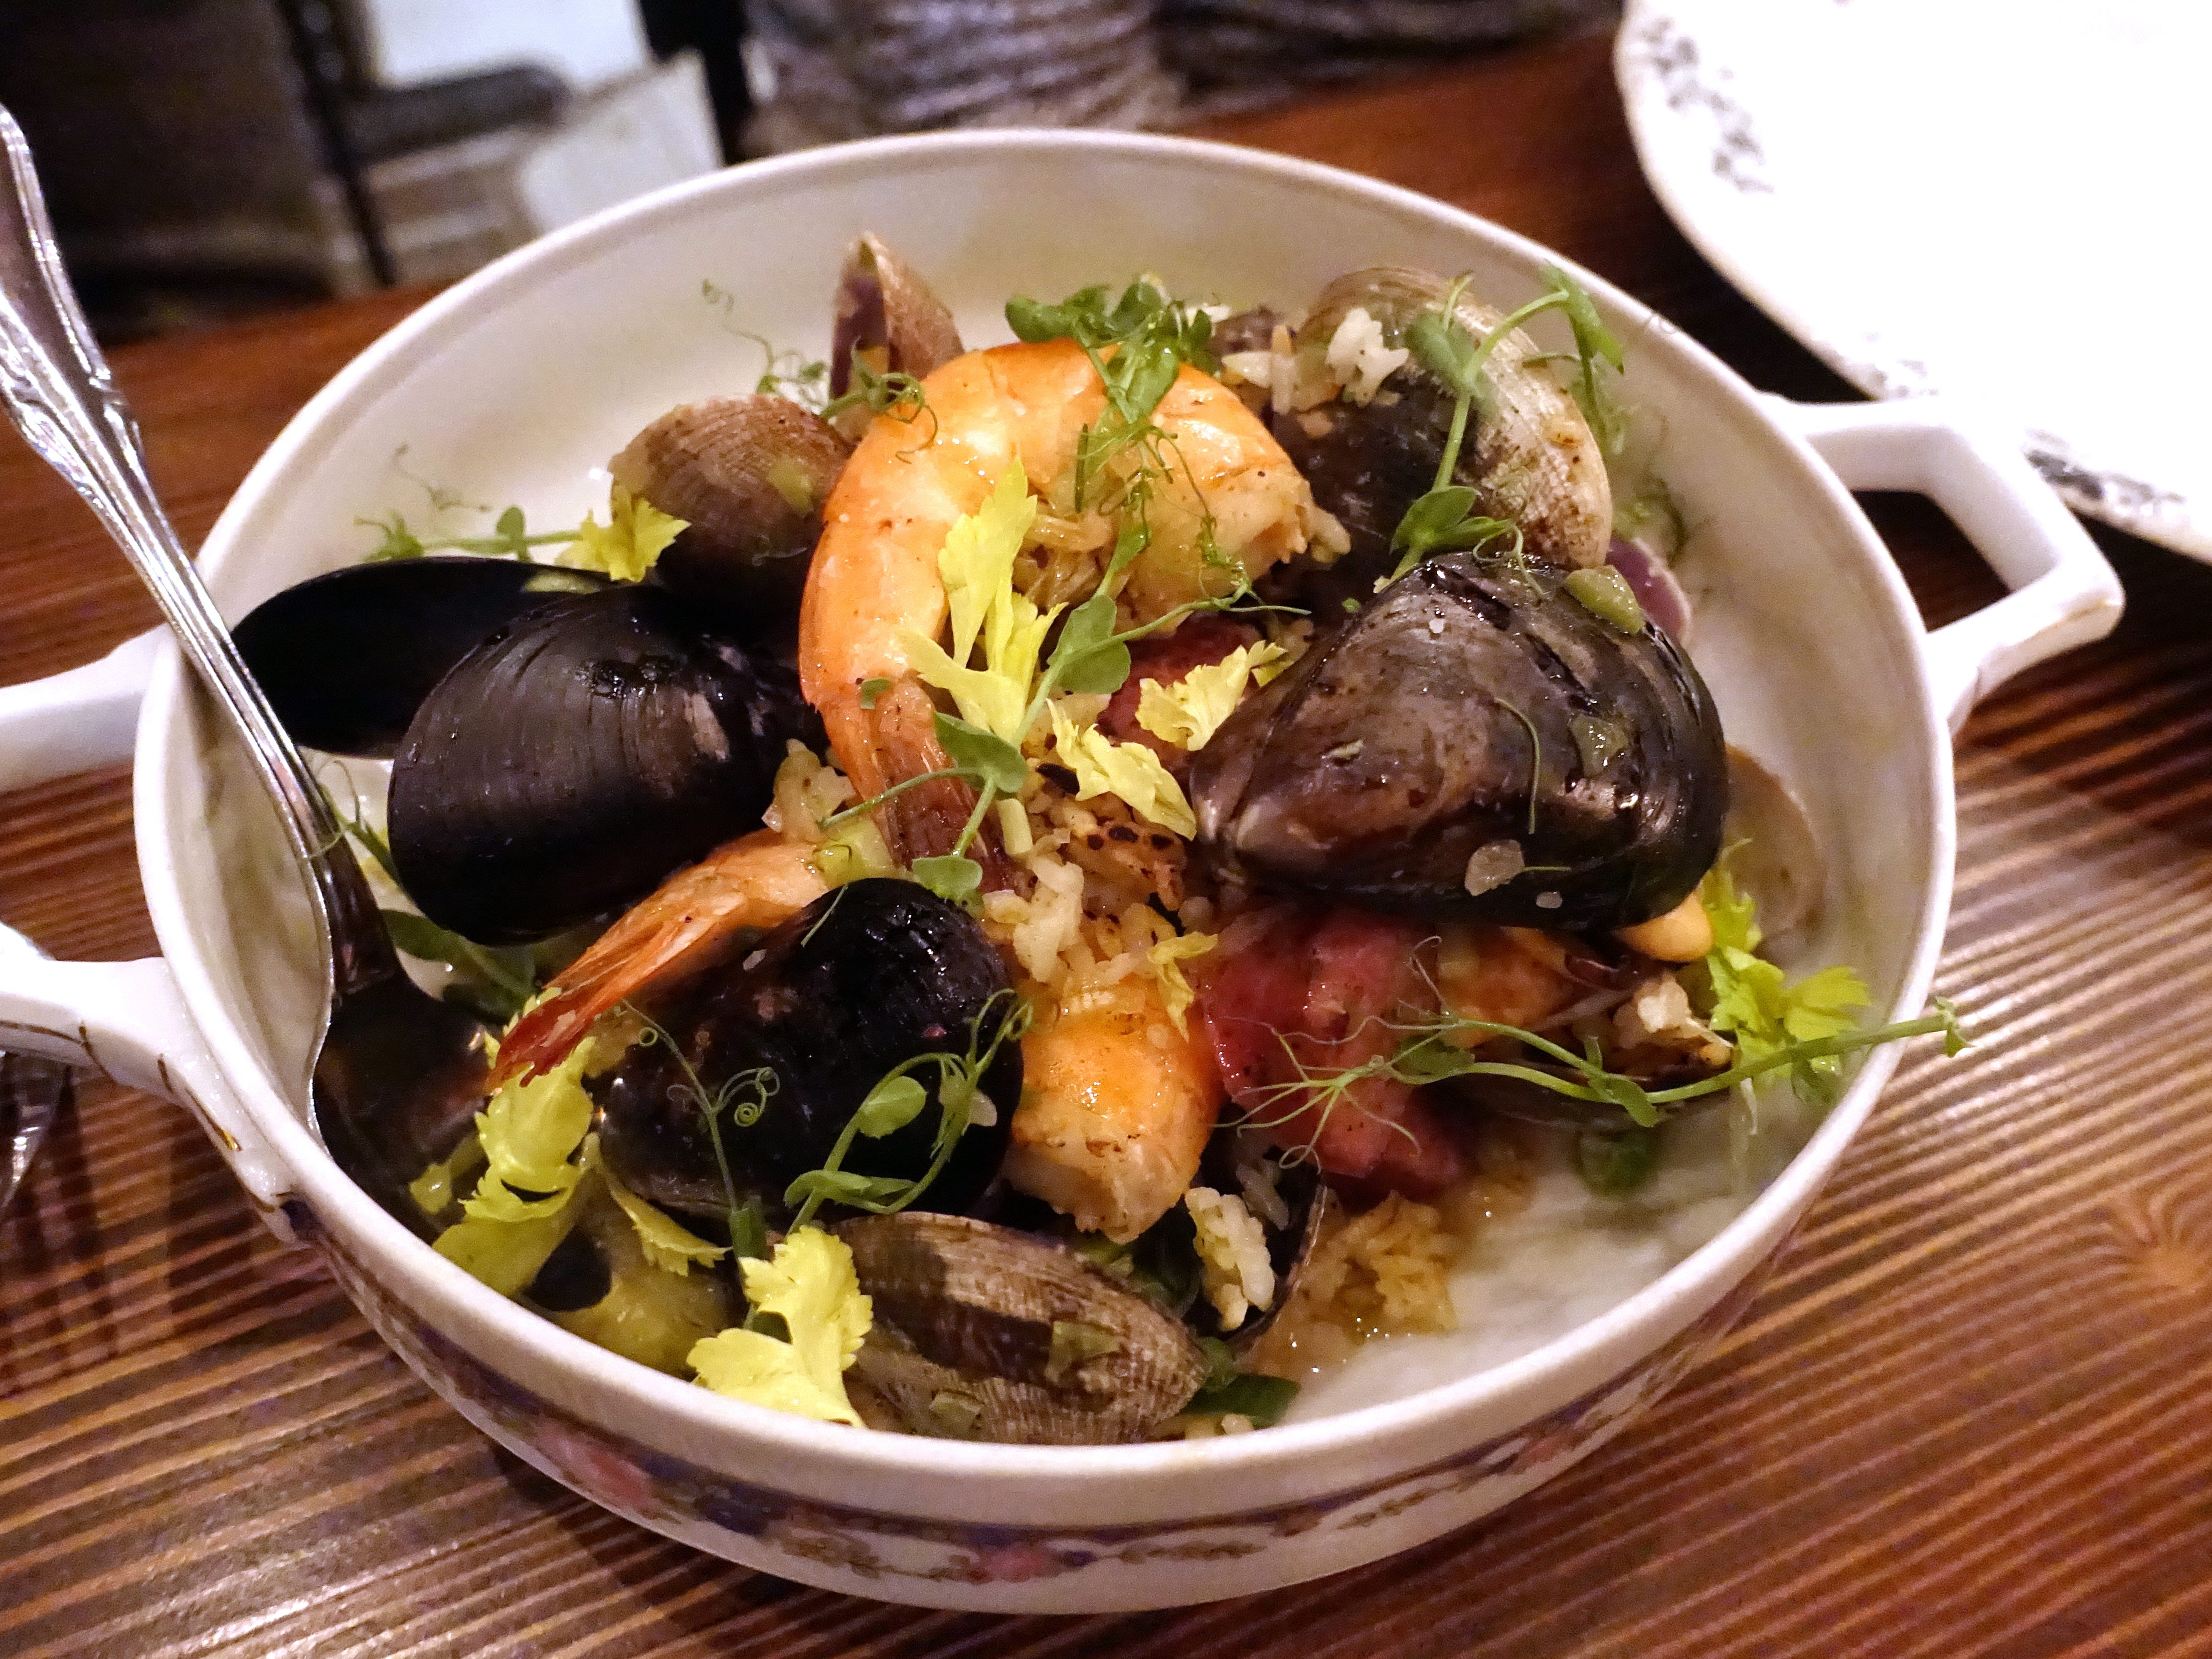 Low country perlou with mussels, clams, shrimp, holy trinity and Carolina Gold rice at The Larder + The Delta in Phoenix.